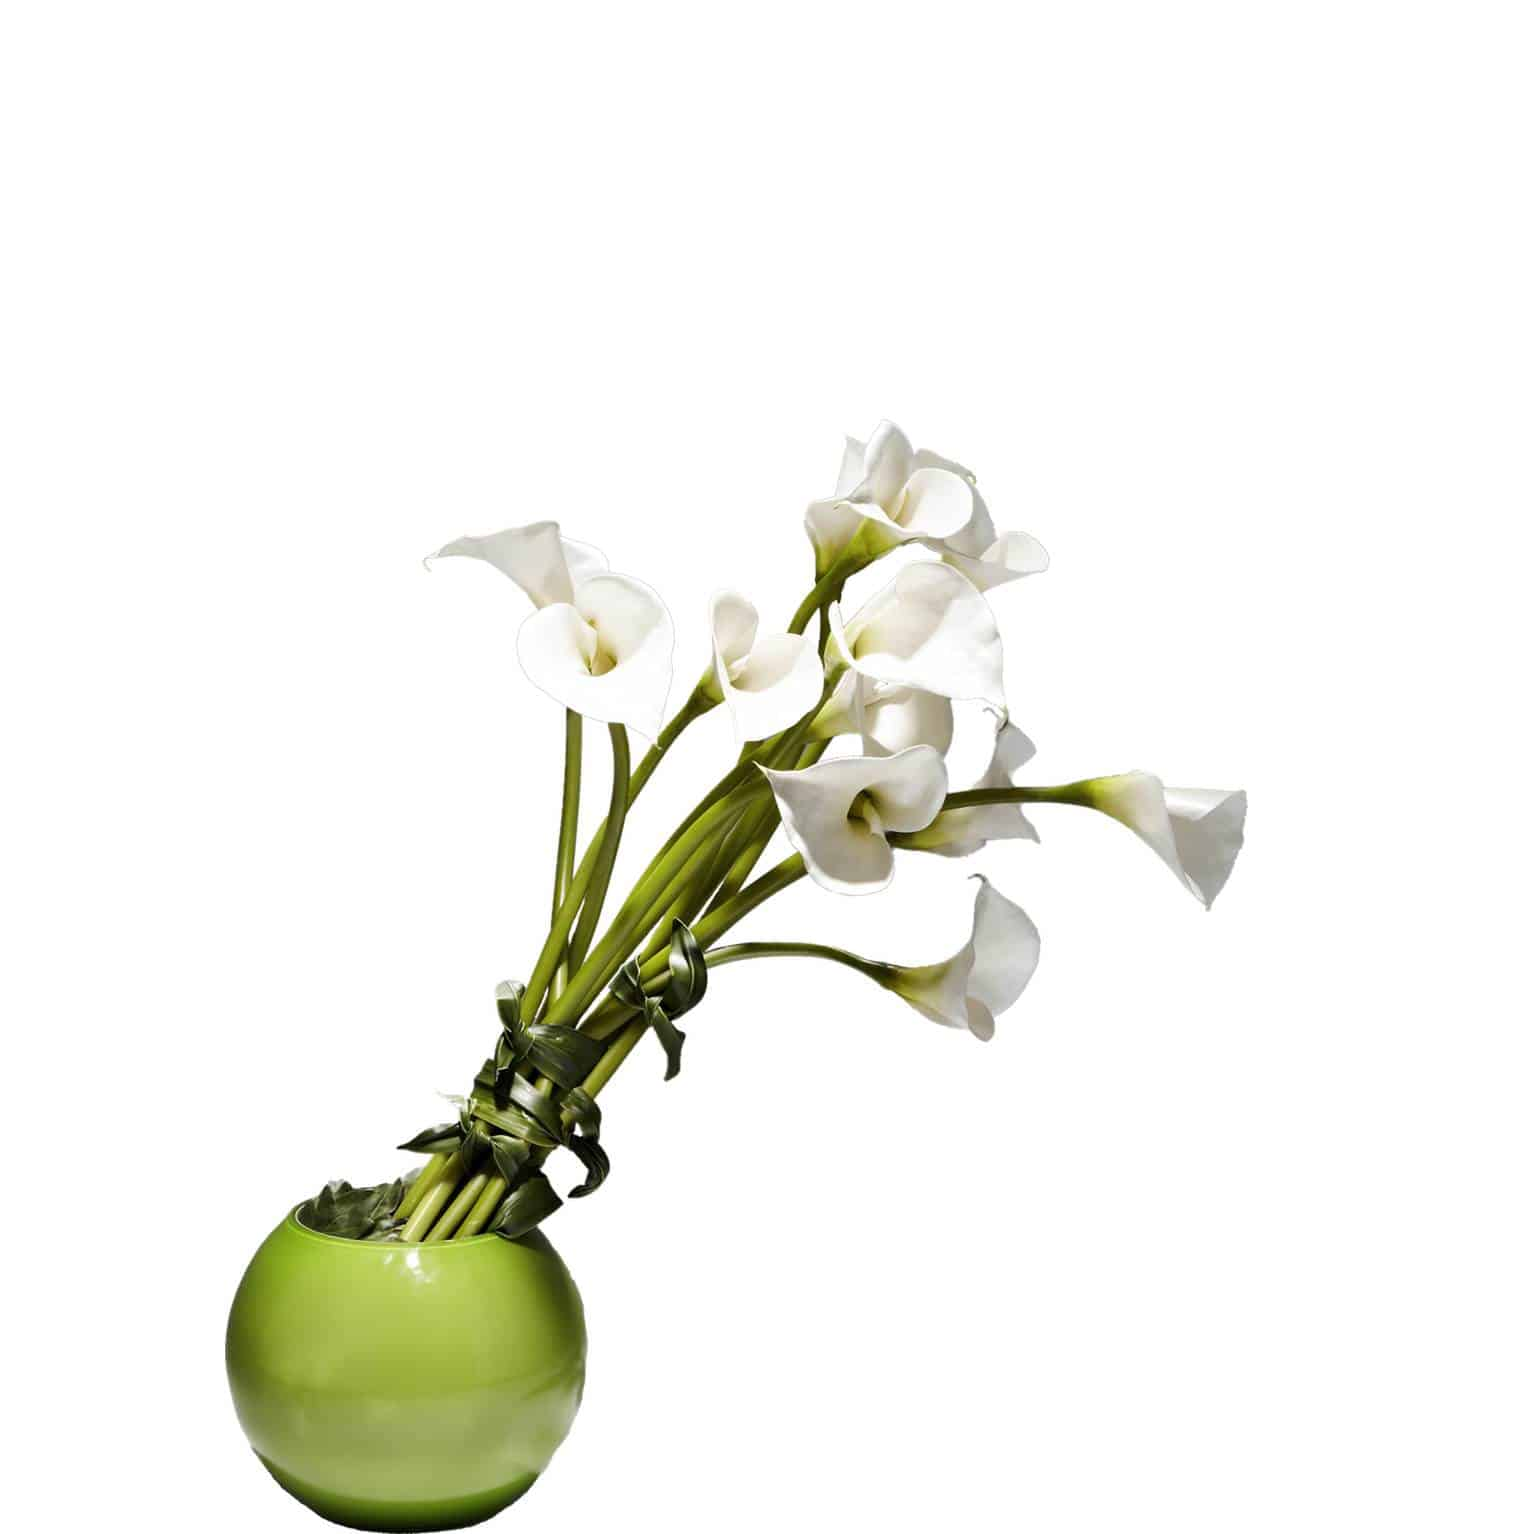 Artificial Plants Hire Silk Flower Hire Rent Artificial Plants And Tree Hire